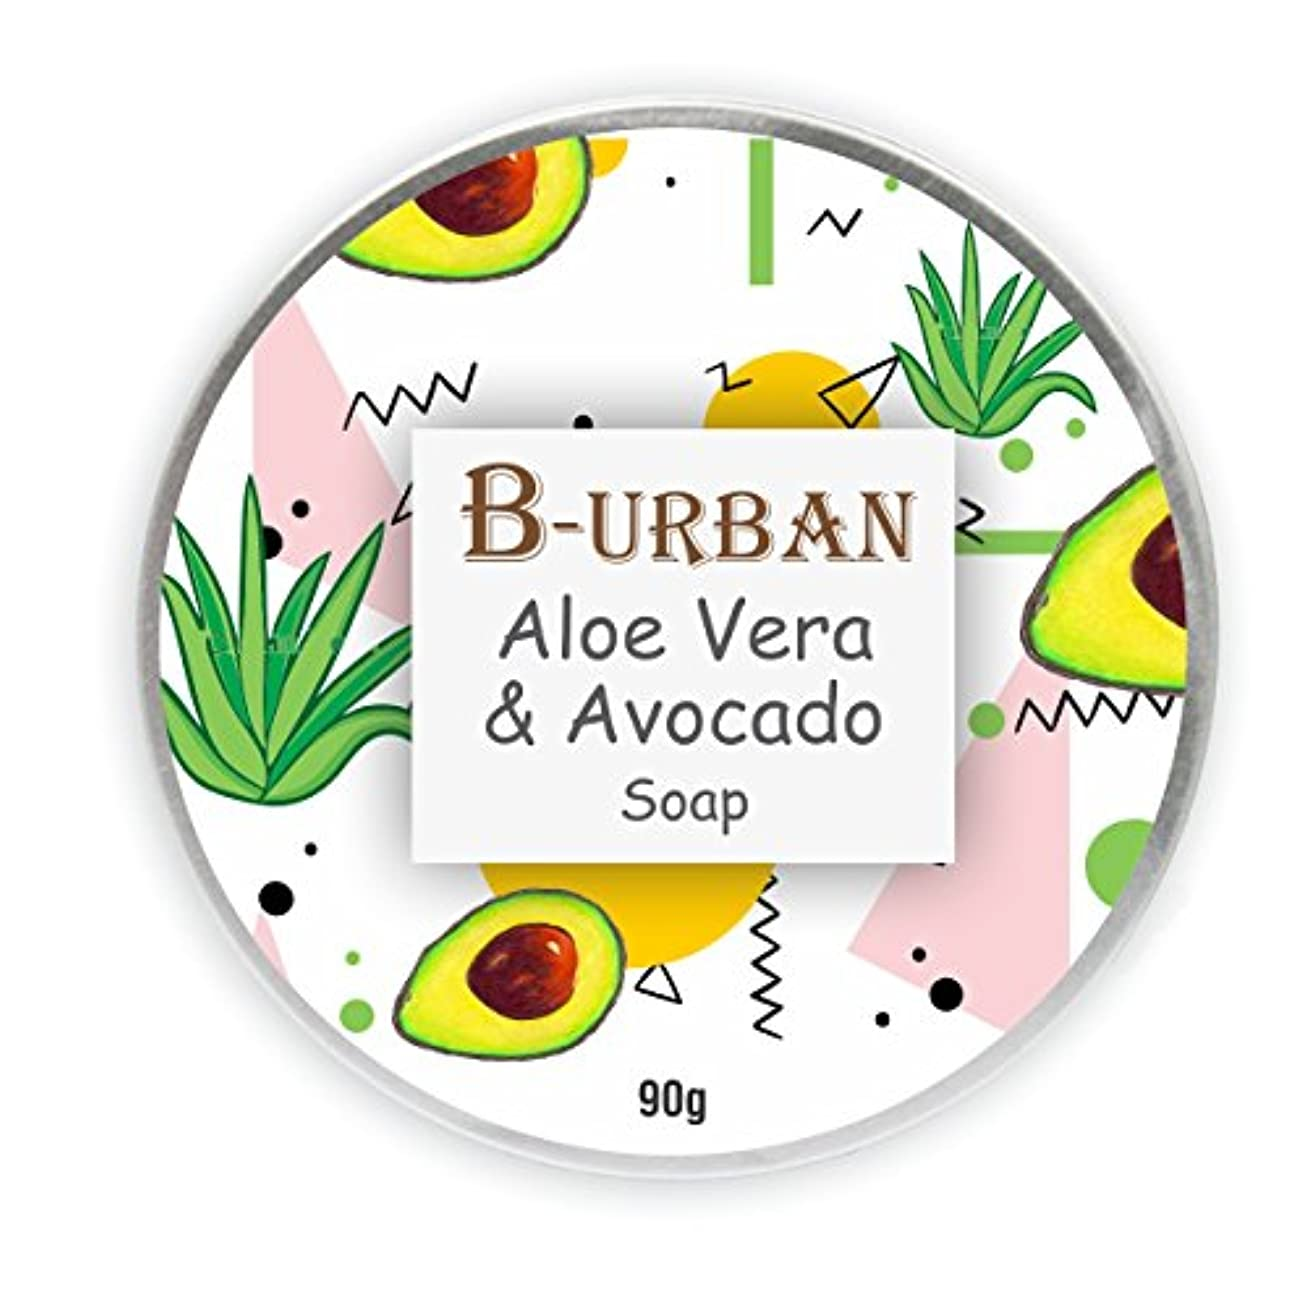 B-Urban Aloe Vera And Avocado Soap Made With Natural And Organic Ingredients. Paraben And Sulphate Free. Moisturizing...